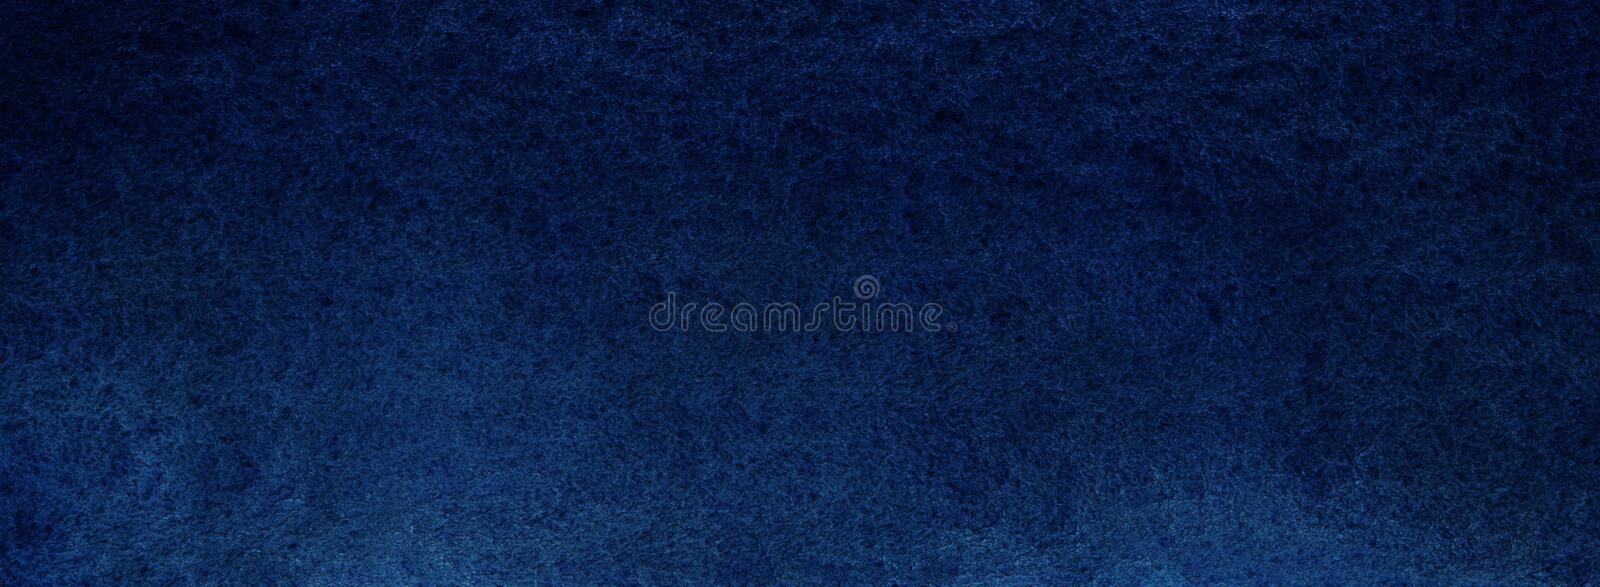 Dark deep blue texture. Night sky or sea abyss. Saturated bright. Background. Hand drawn watercolor vector illustration